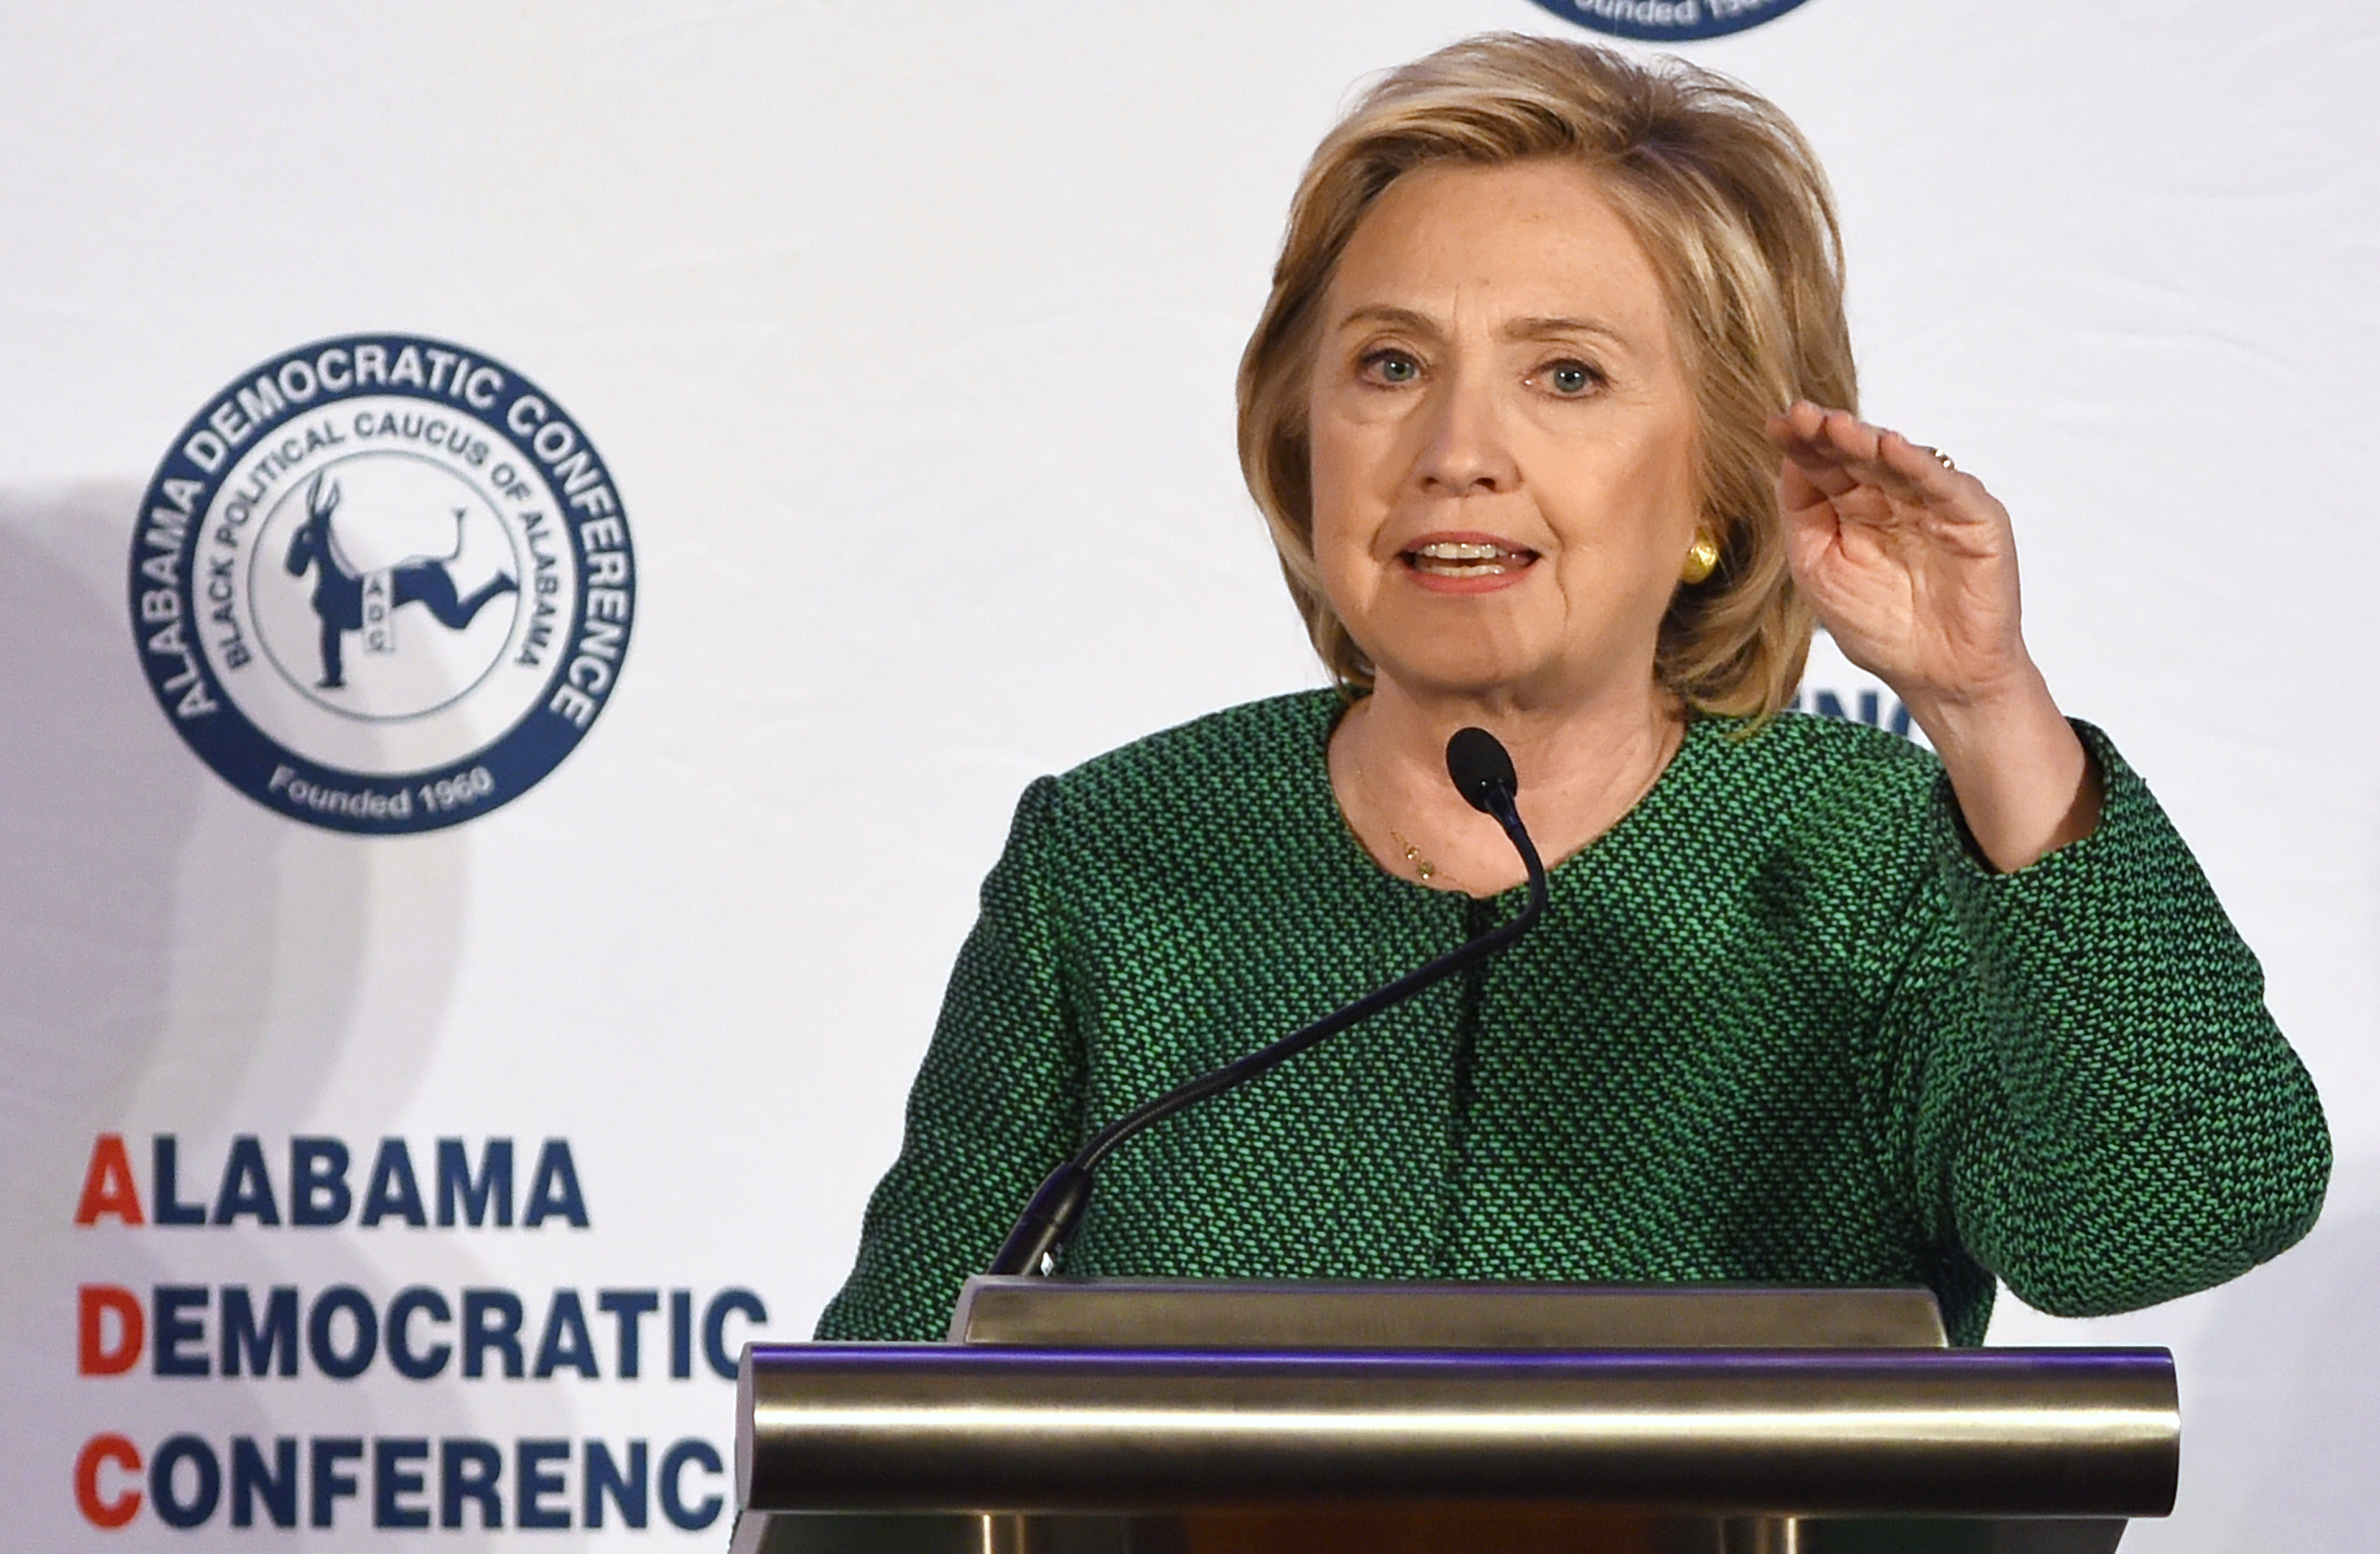 Democratic presidential candidate Hillary Rodham Clinton speaks during a meeting of the Alabama Democratic Conference in Hoover, Ala., Oct. 17, 2015.